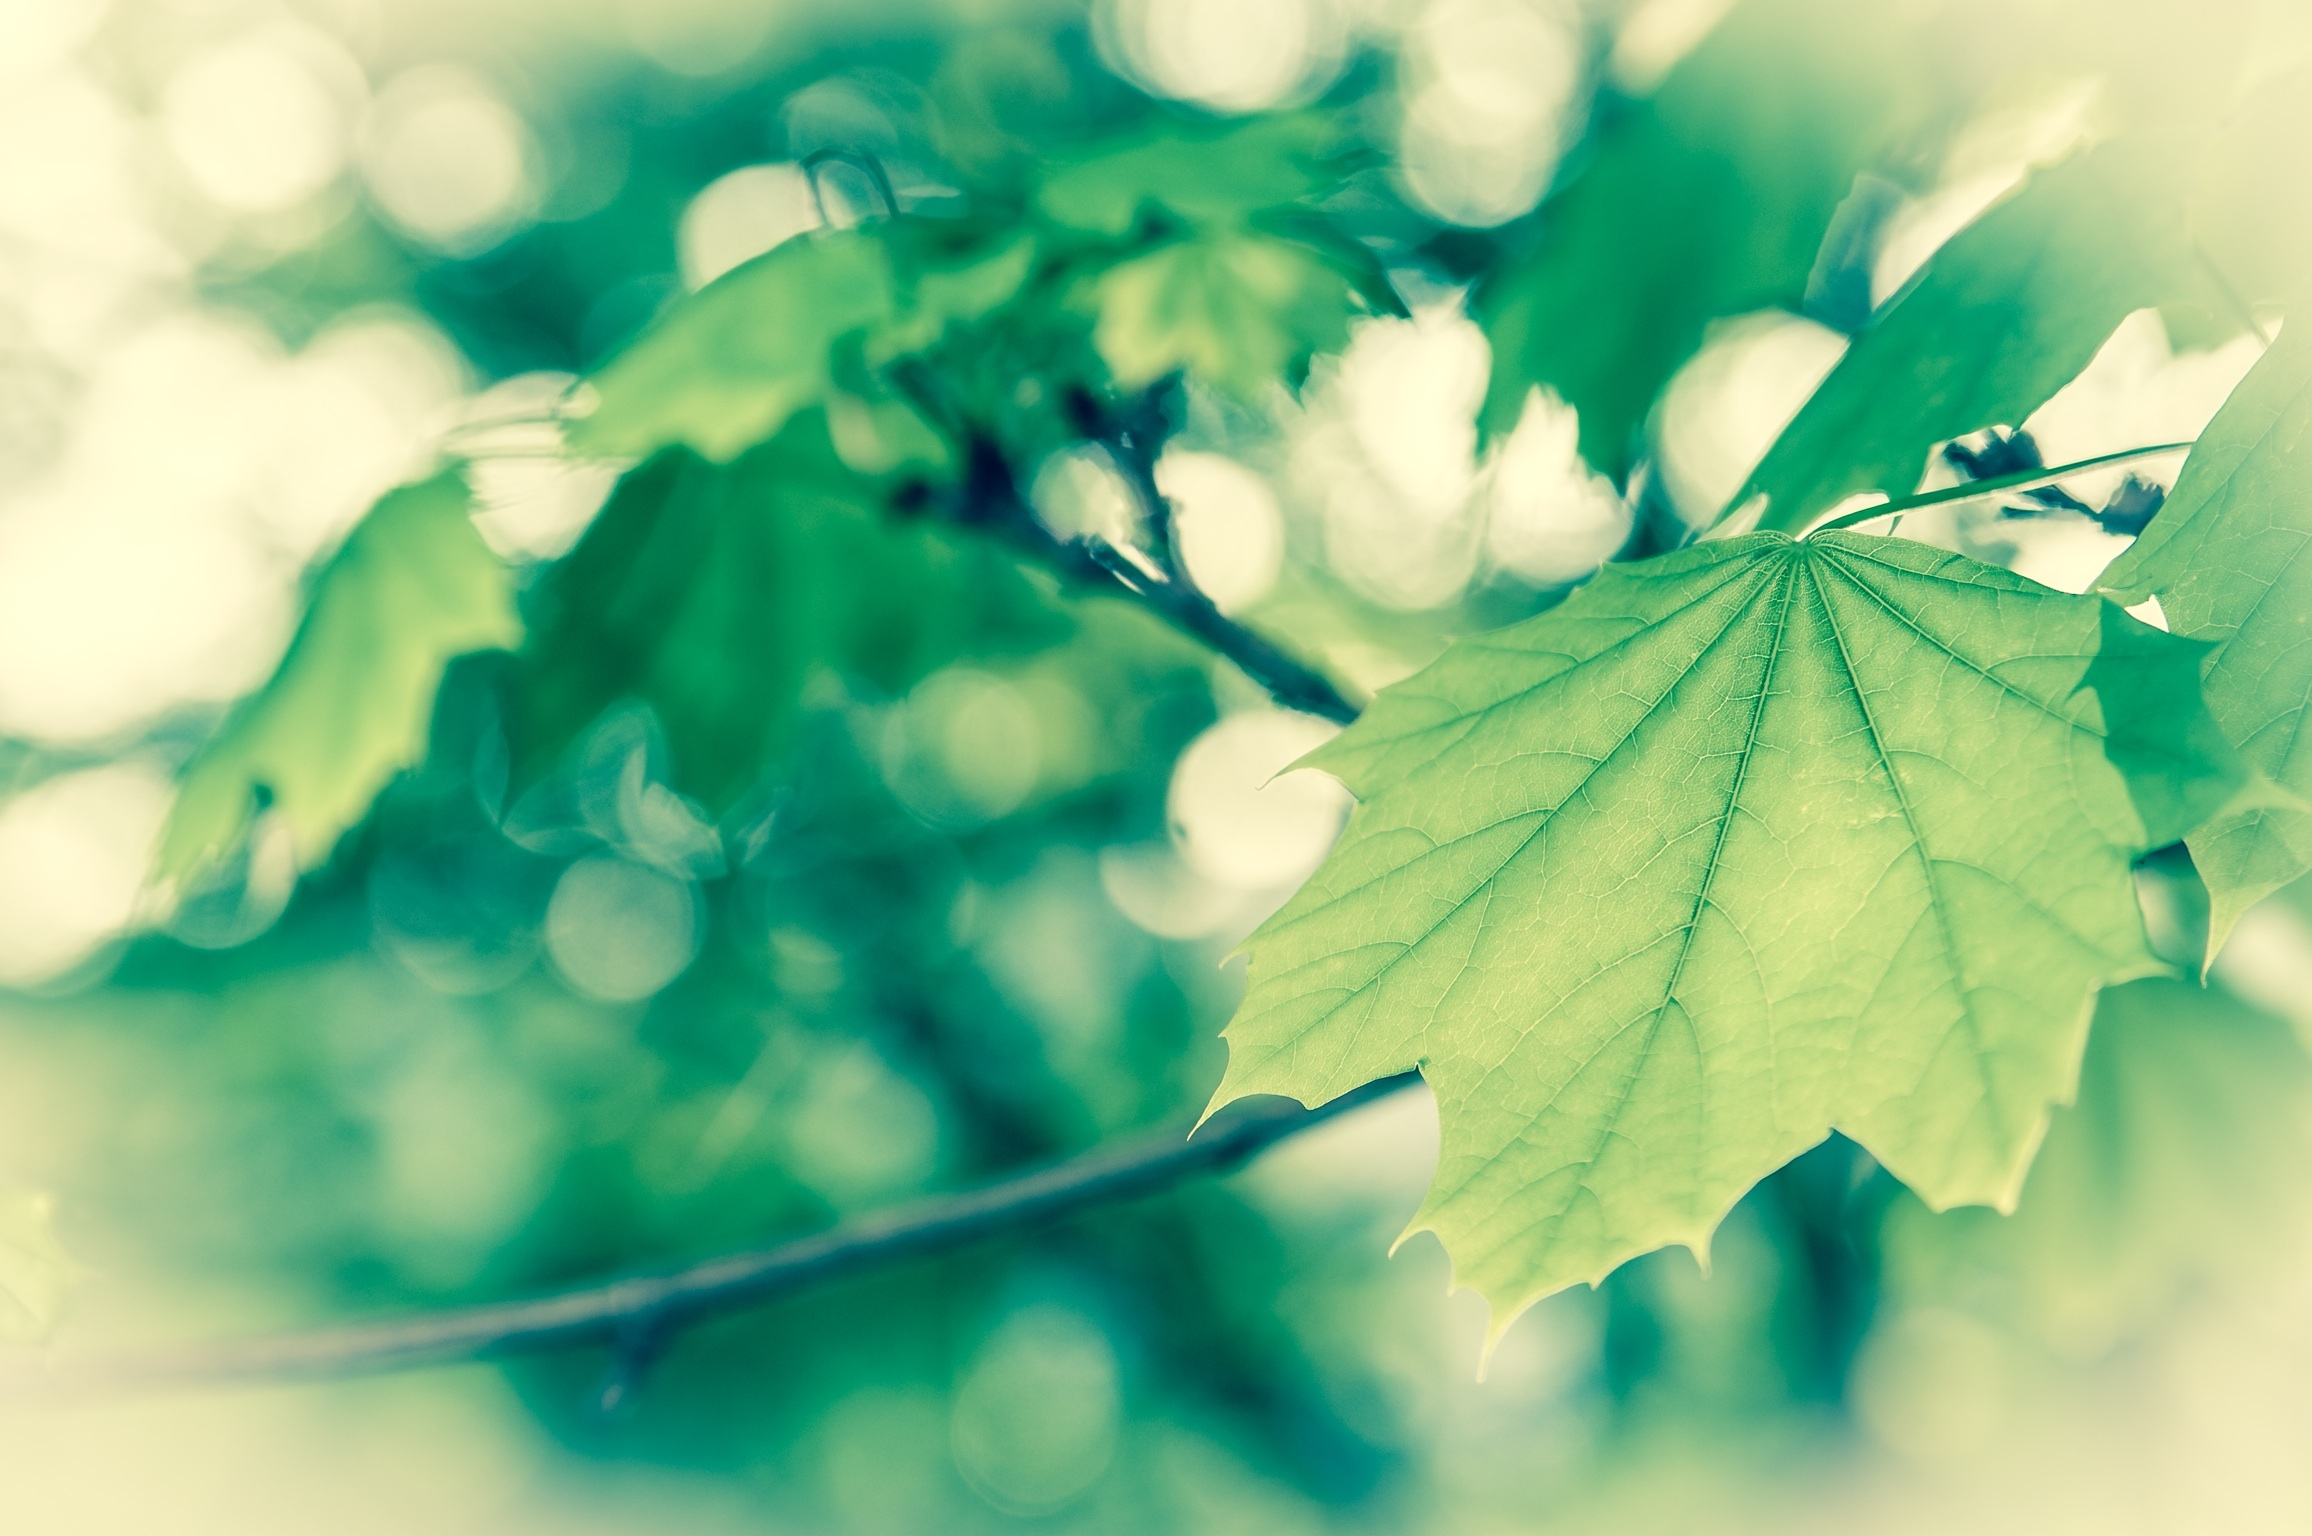 129488 download wallpaper Macro, Leaves, Maple, Branch, Form screensavers and pictures for free